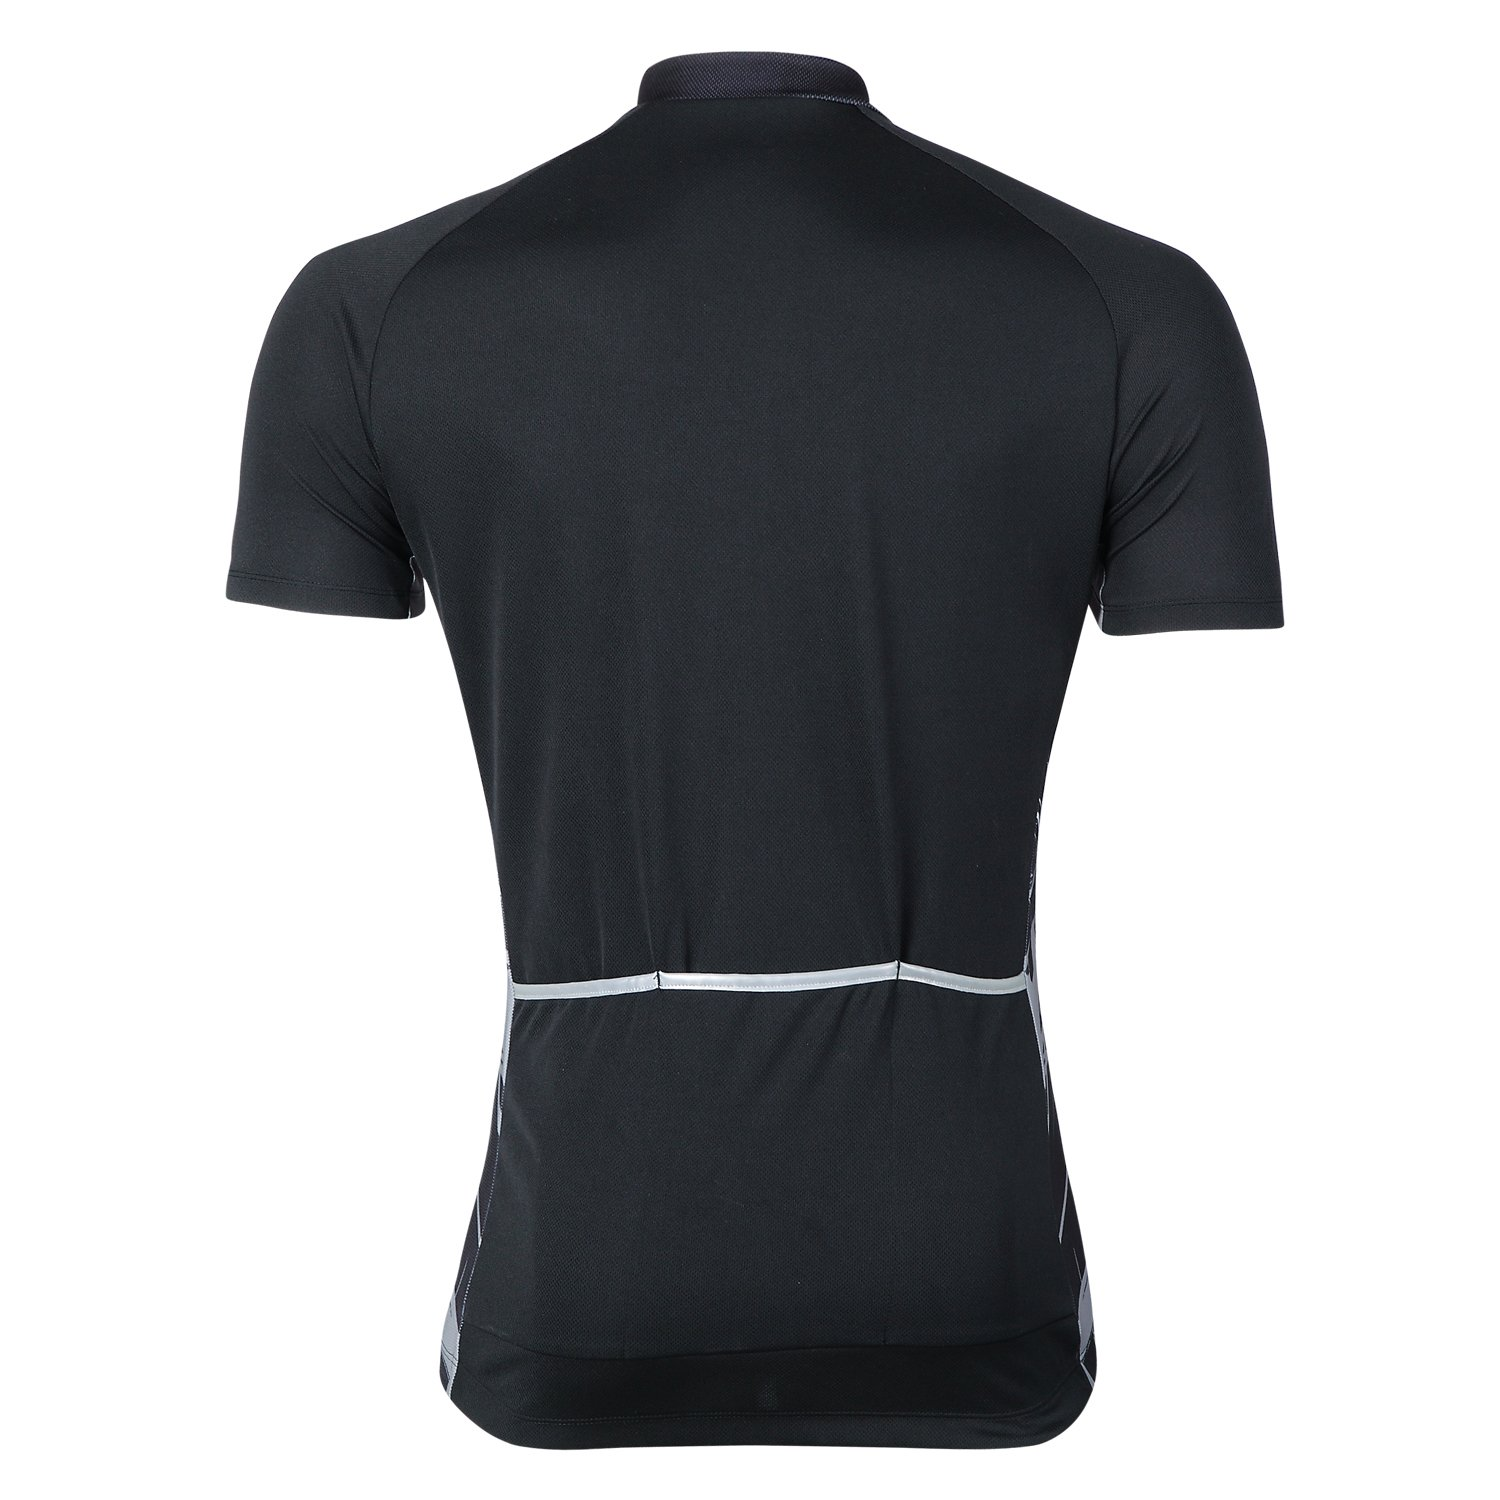 Cycling Jersey Mens Long Sleeve Men/'s Bike Jersey Full Zipper Cycling Shirts with Pockets Biking Jersey/&Road Bicycle Jersey